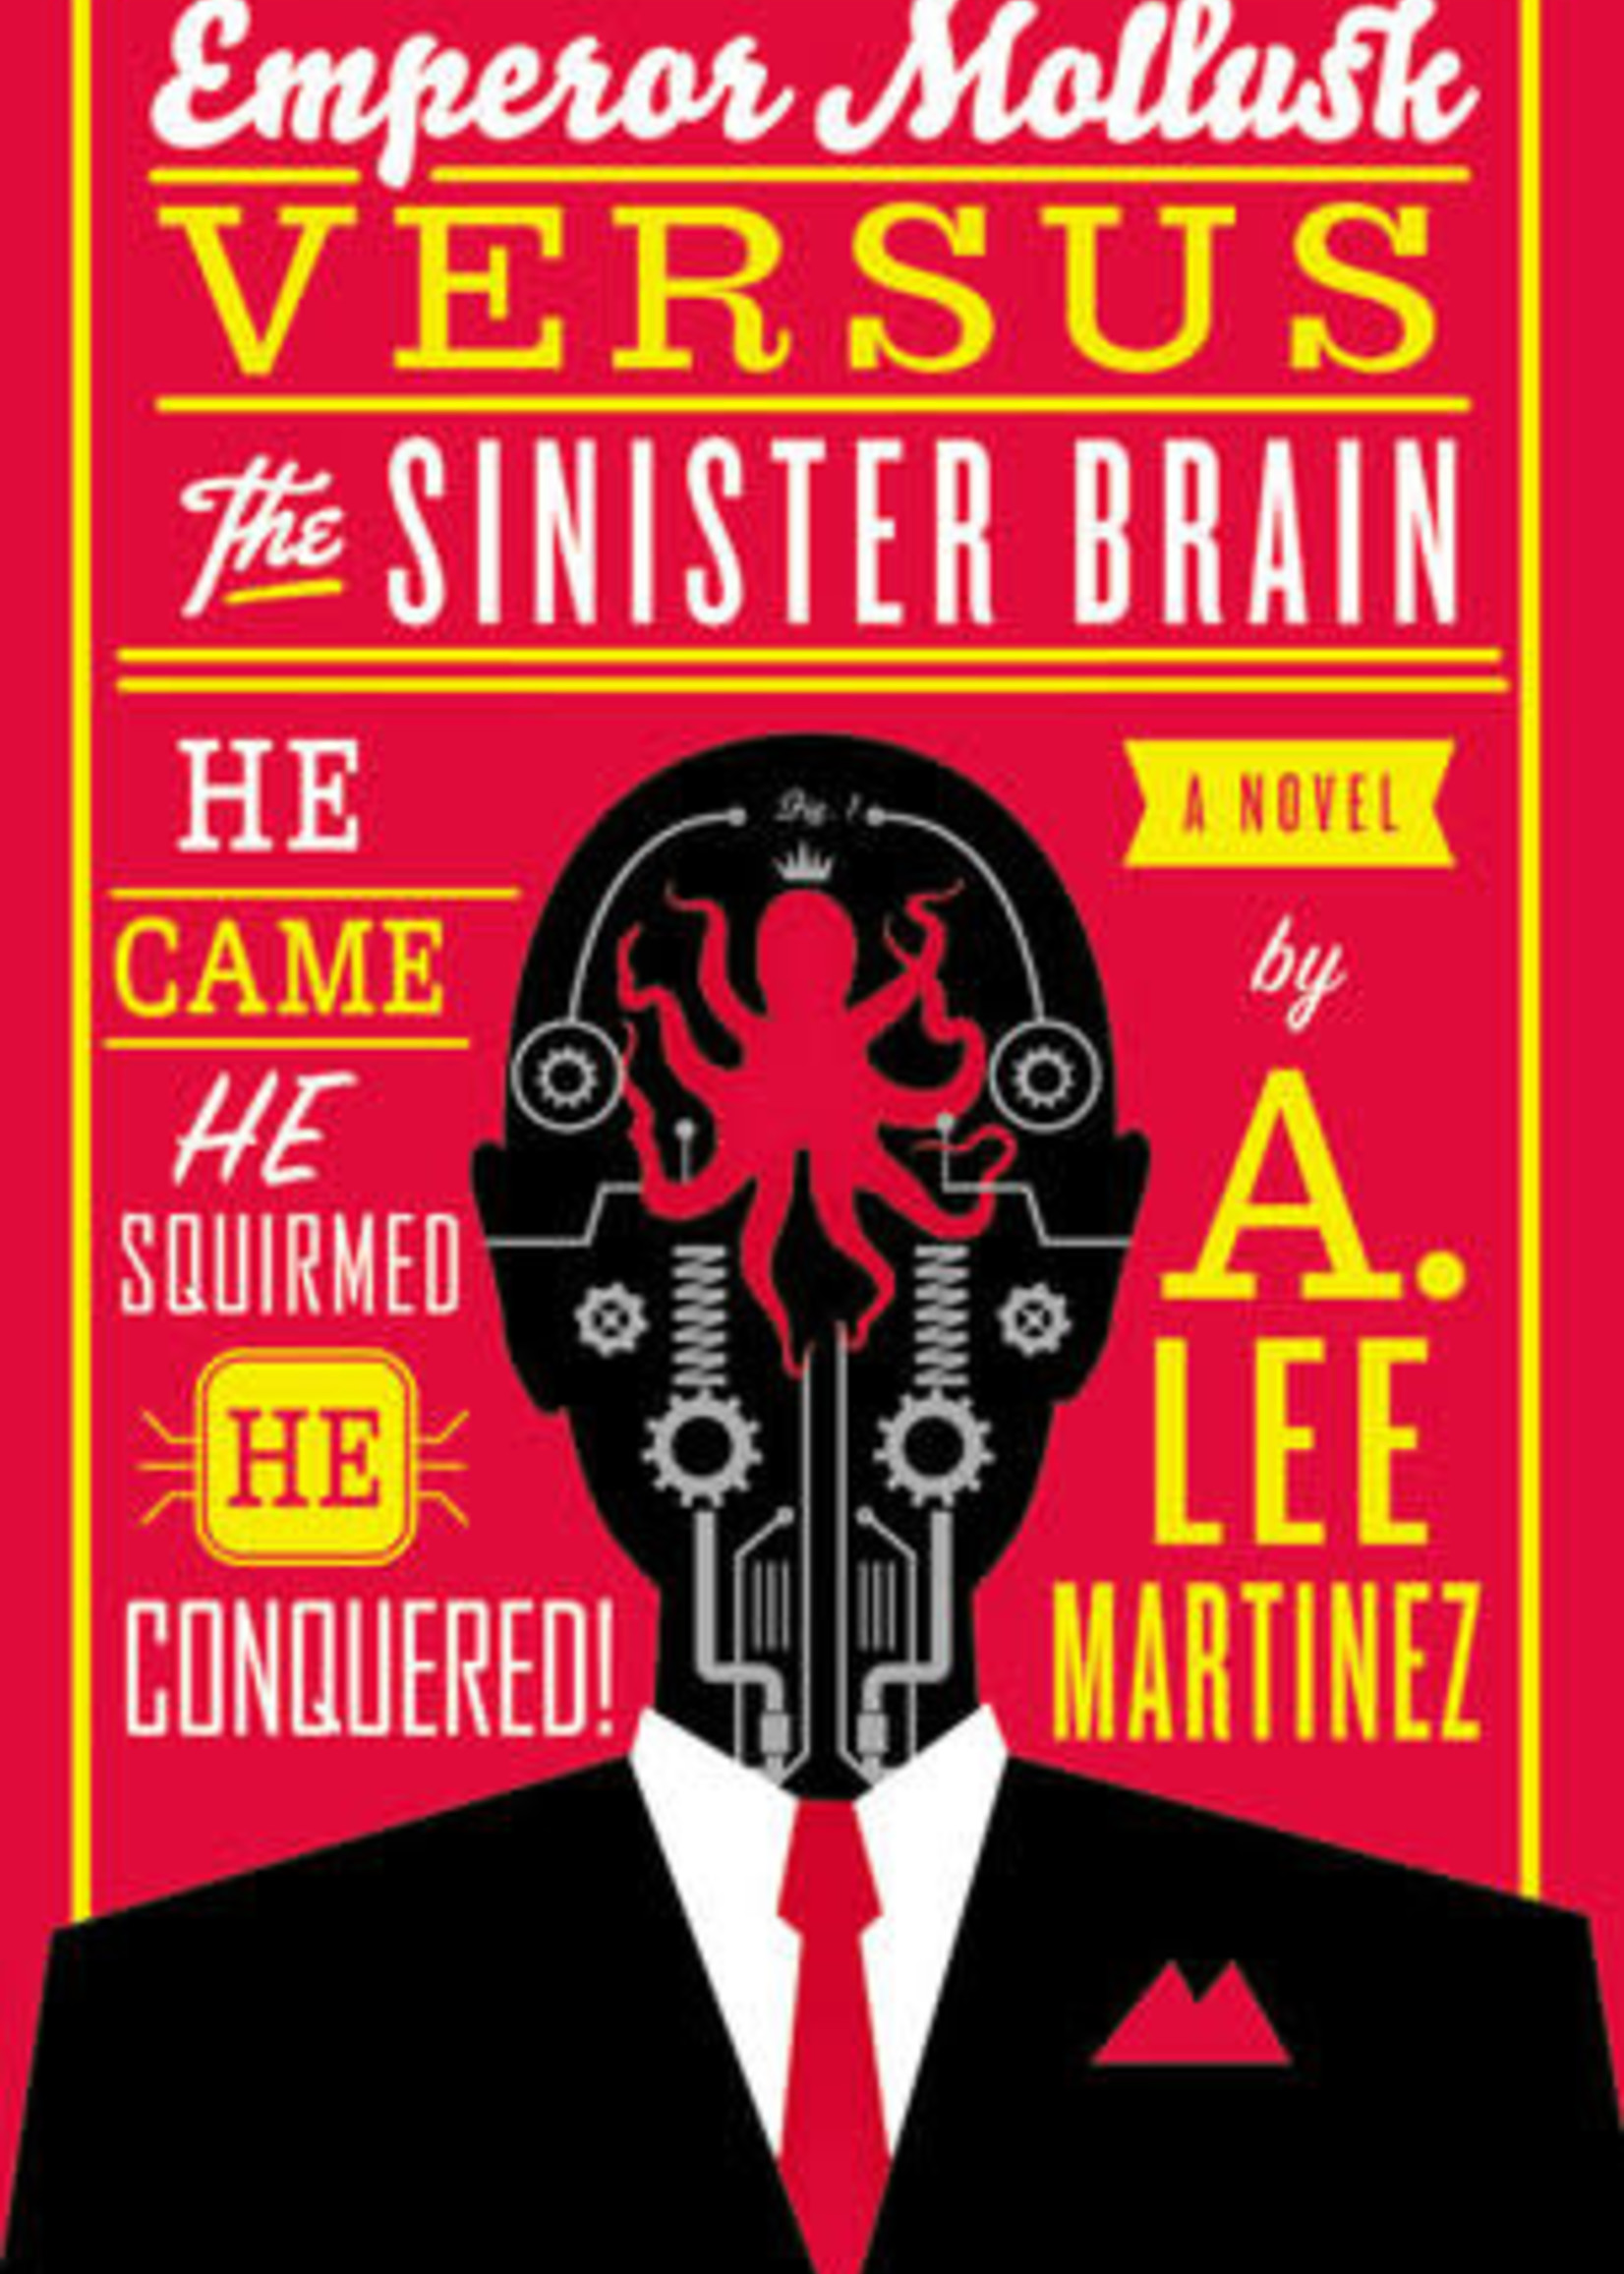 USED - Emperor Mollusk versus The Sinister Brain by A. Lee Mrtinez